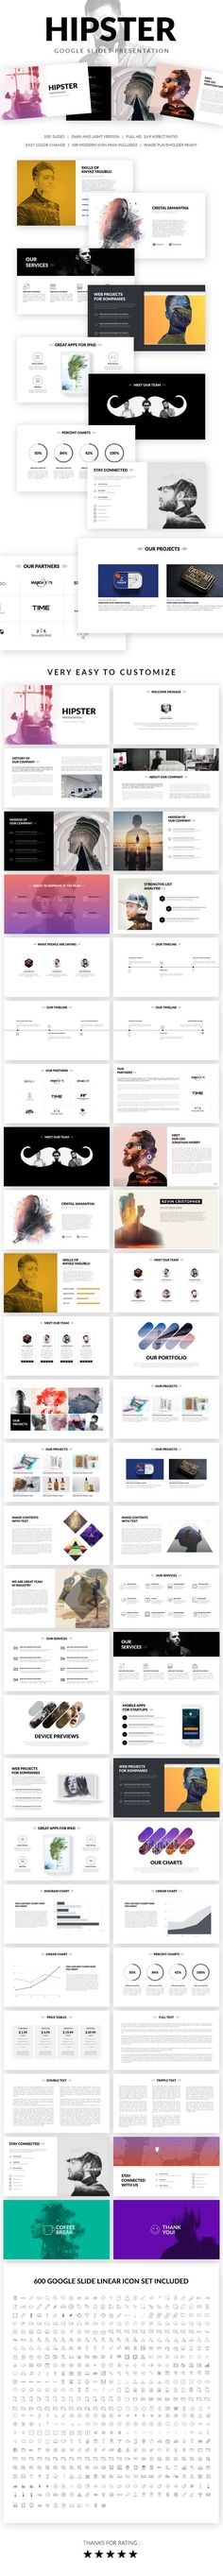 Hipster Google Slides Presentation Template Templates Point Free